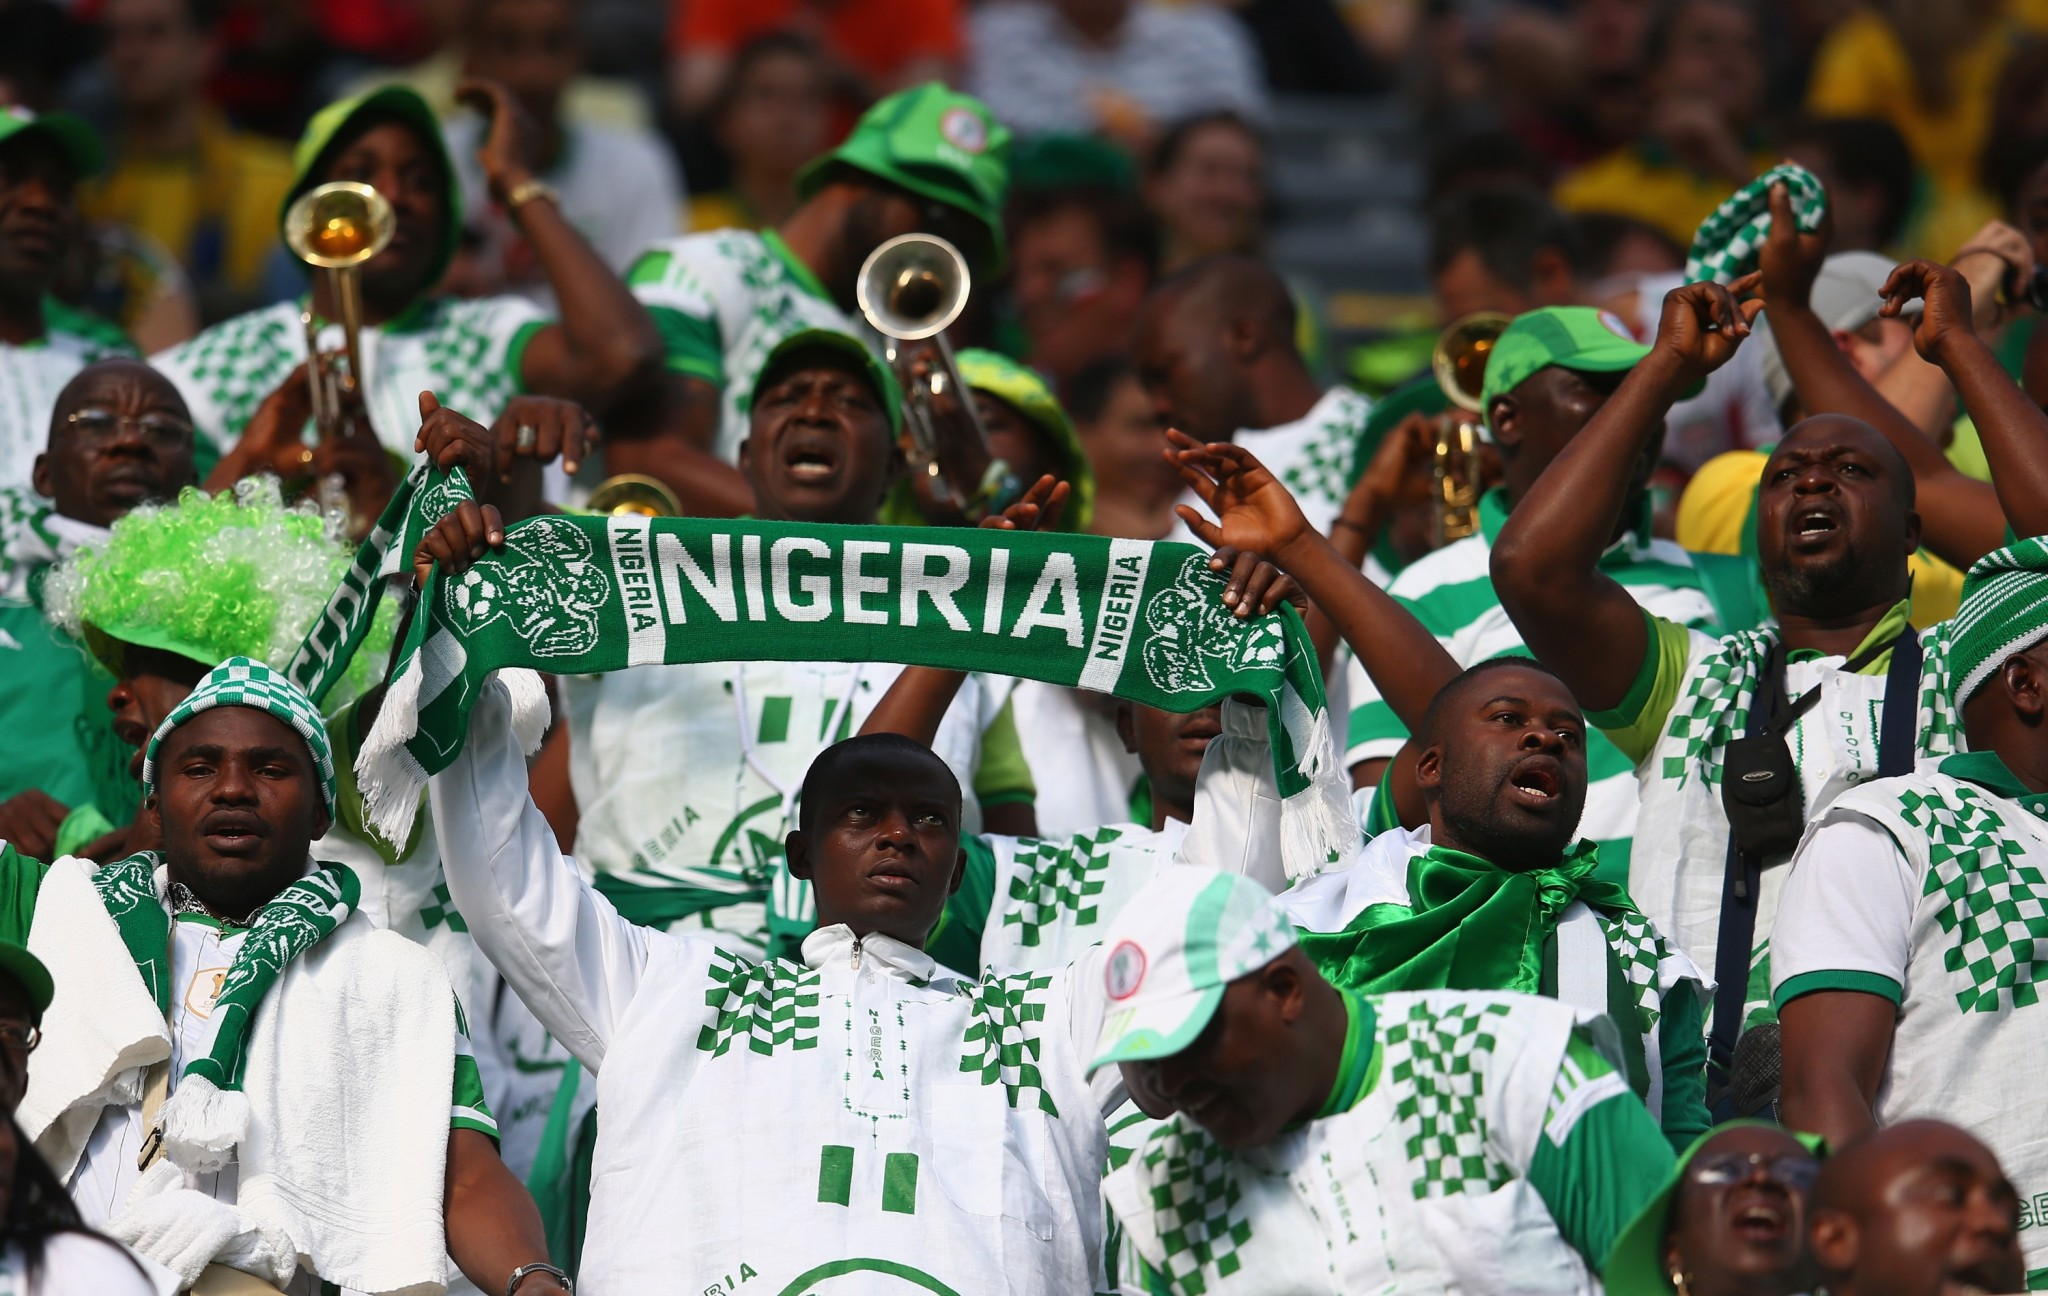 Nigeria, Ghana and South Africa favourites to progress